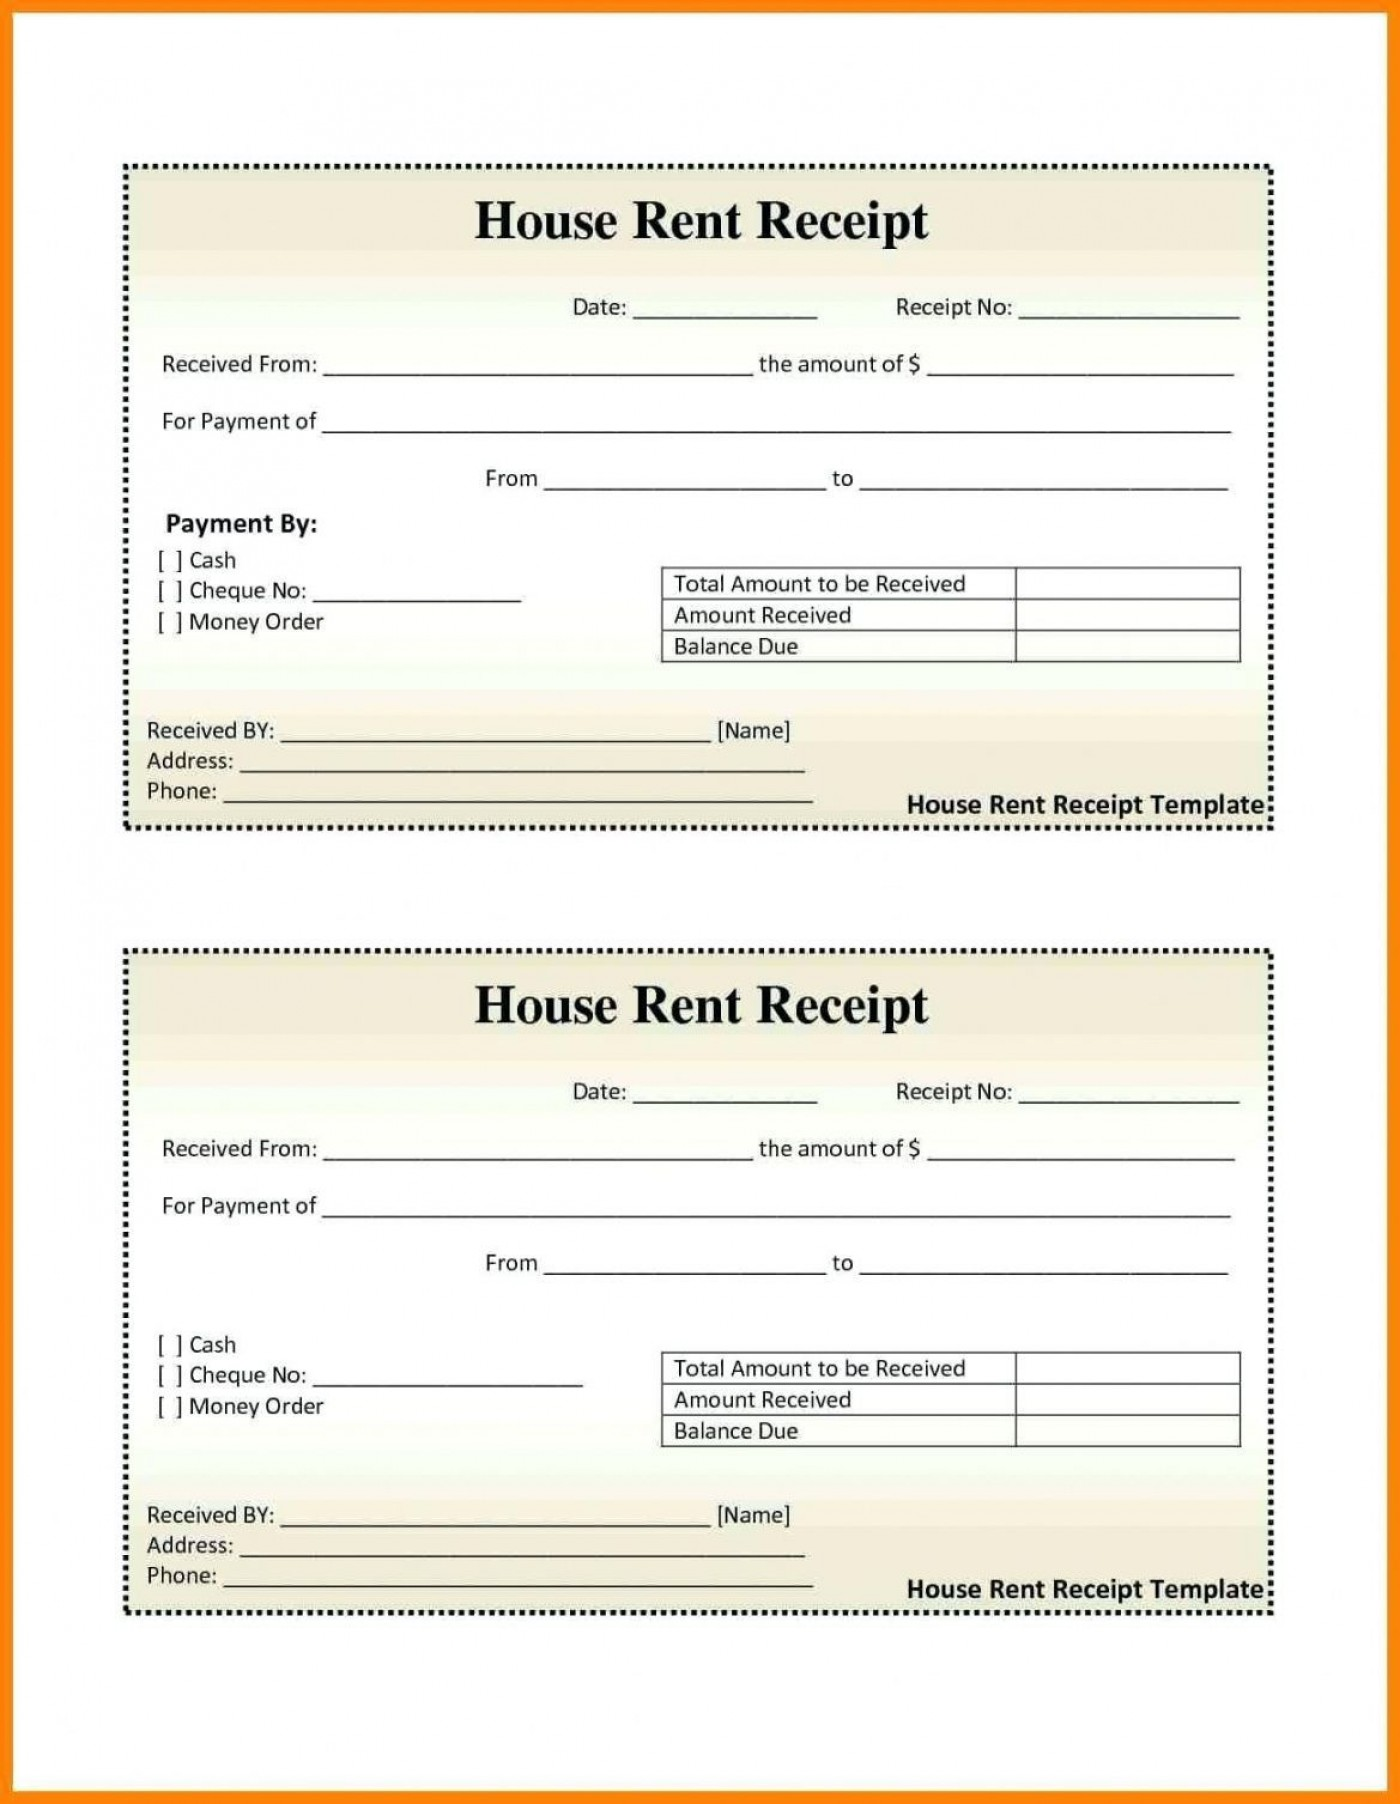 000 Excellent House Rent Receipt Sample Doc Photo  Template Word Document Free Download Format For Income Tax1400